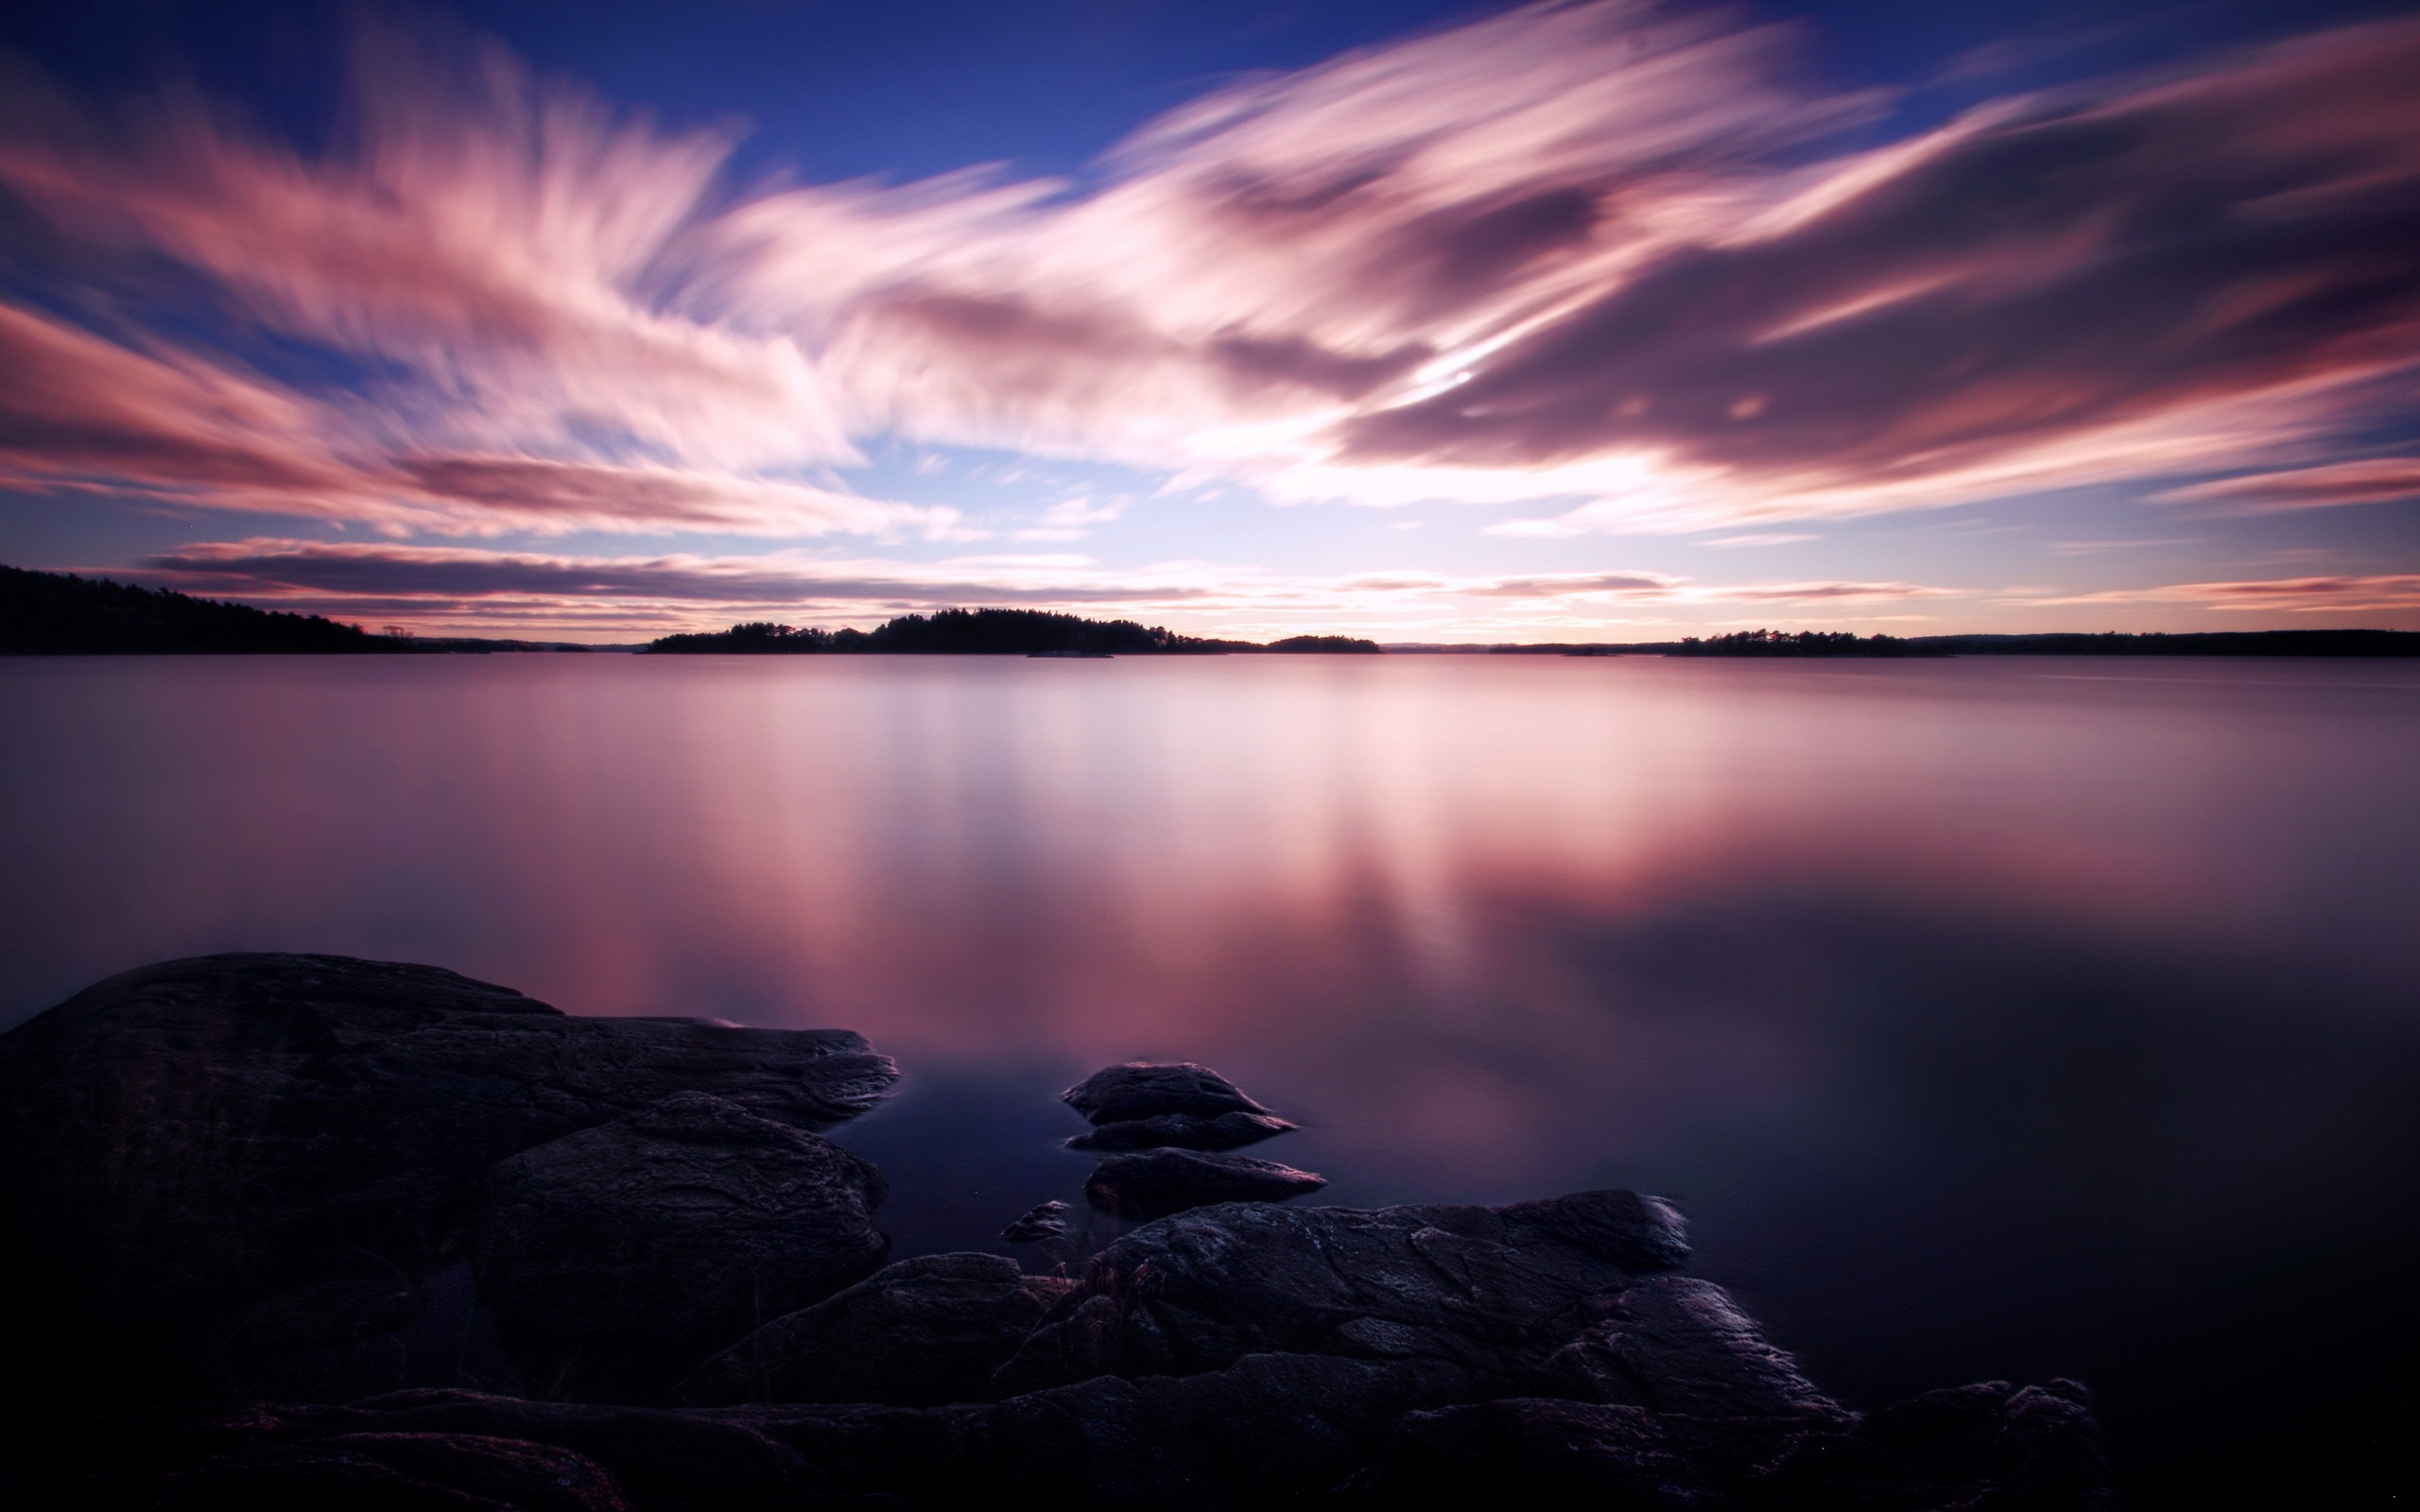 Wallpaper Purple Sunset White Clouds In The Sky Lake Water 2560x1600 Hd Picture Image